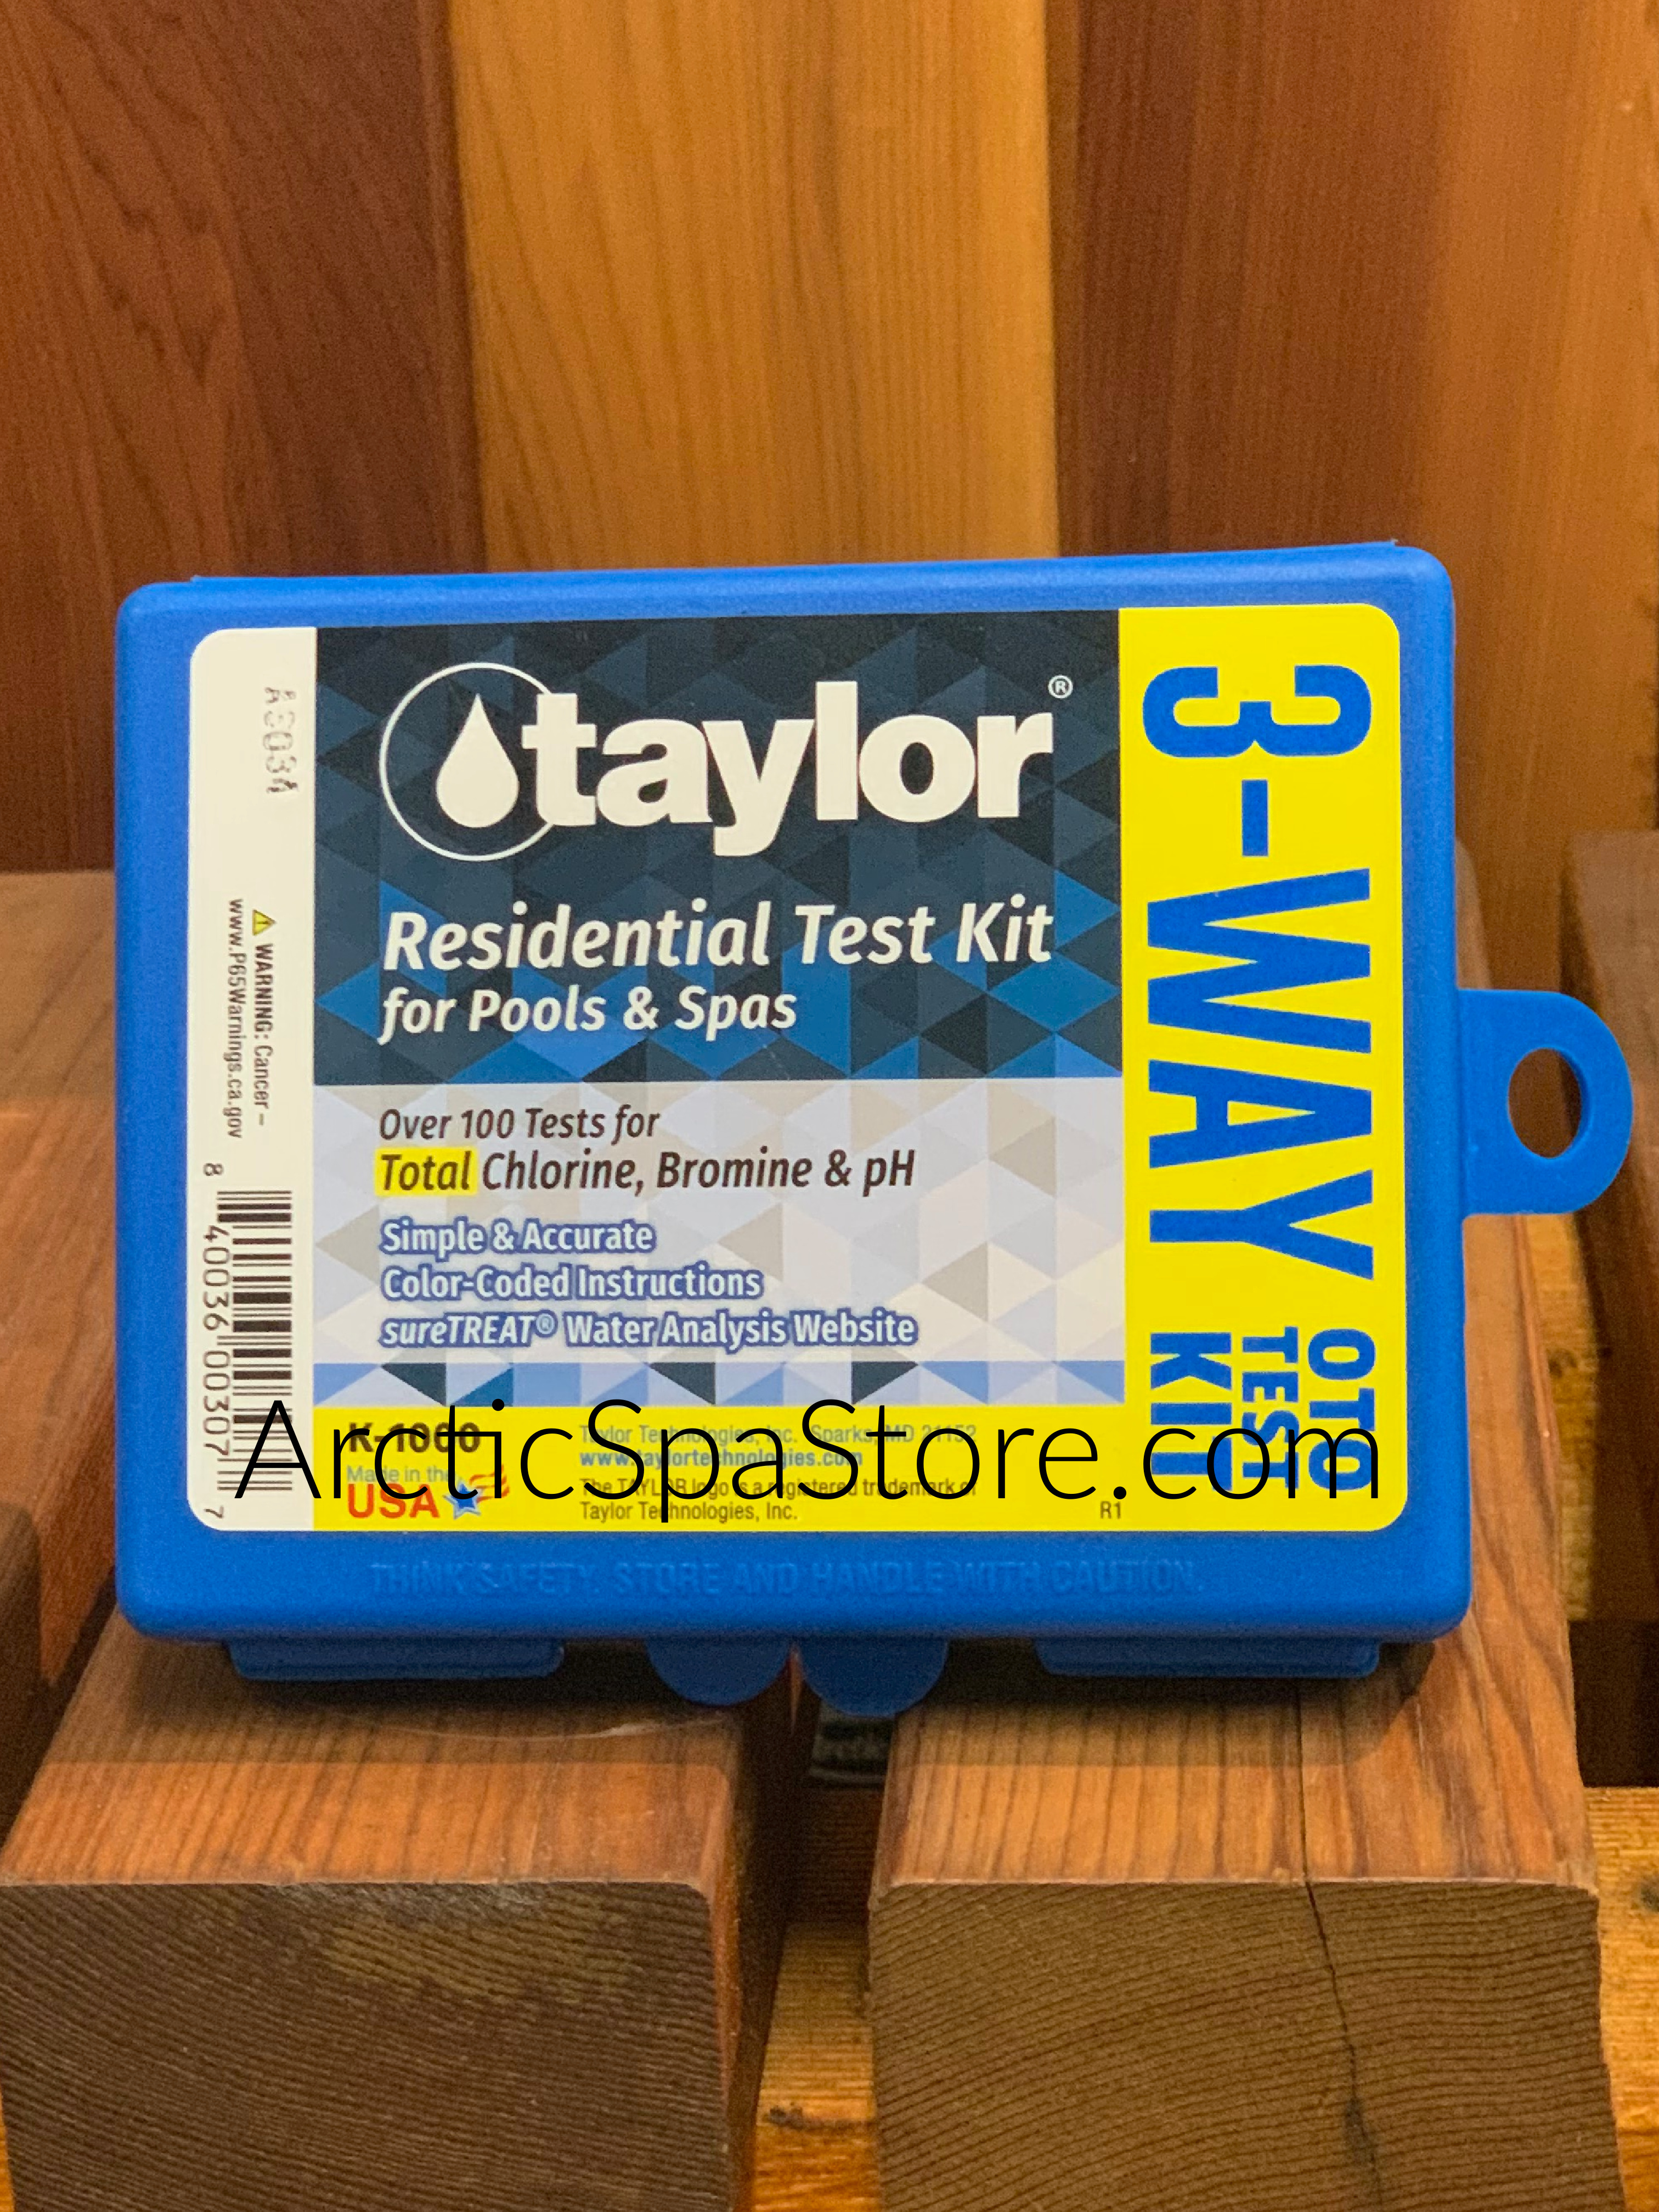 New product - Check out our new liquid test kit the Taylor 3 Way OTO Liquid Test Kit for Chlorine/Bromine and pH